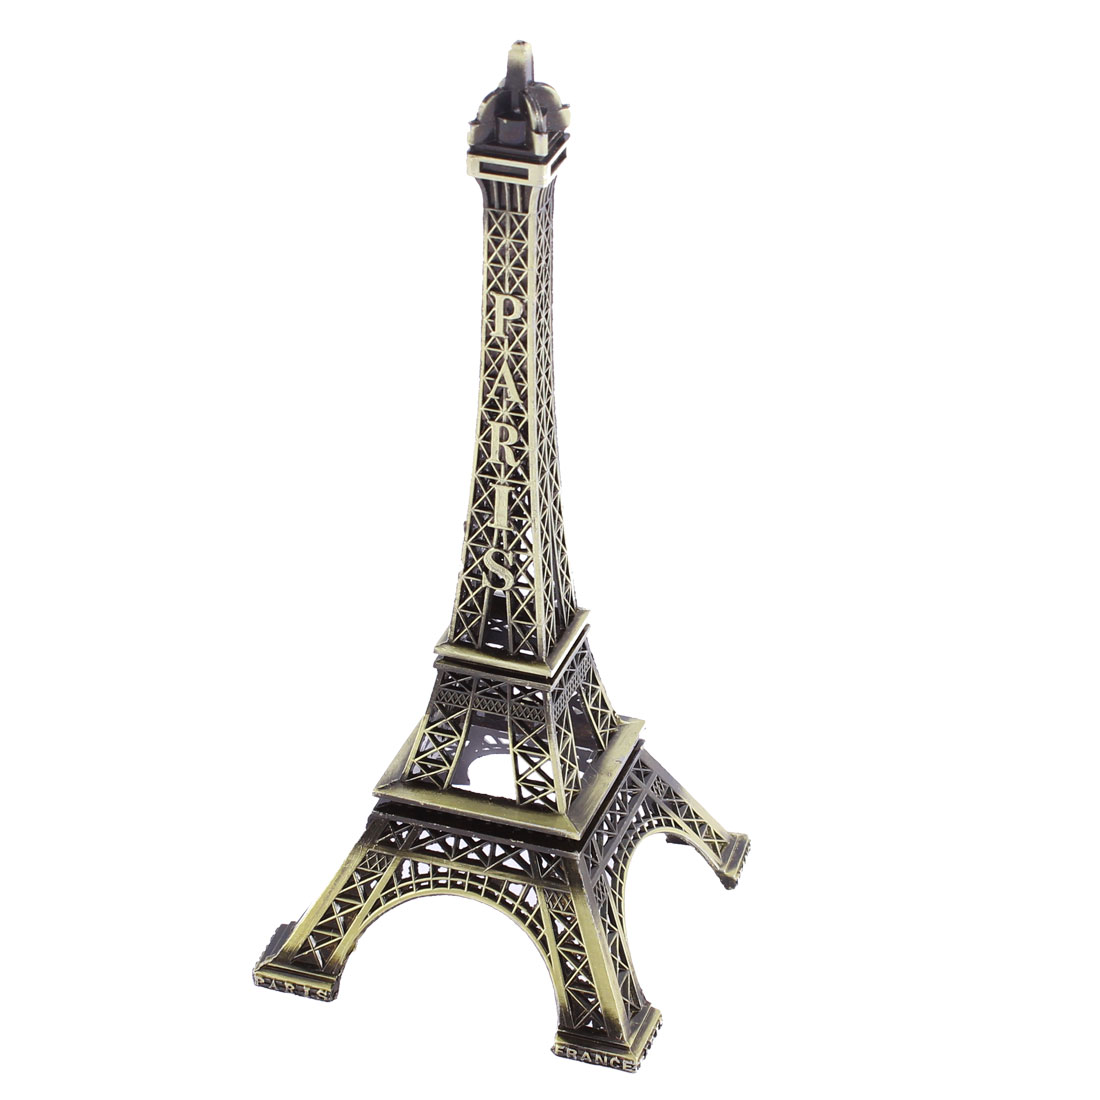 Metal Paris Eiffel Tower Model Decor 18.5cm High Bronze Tone